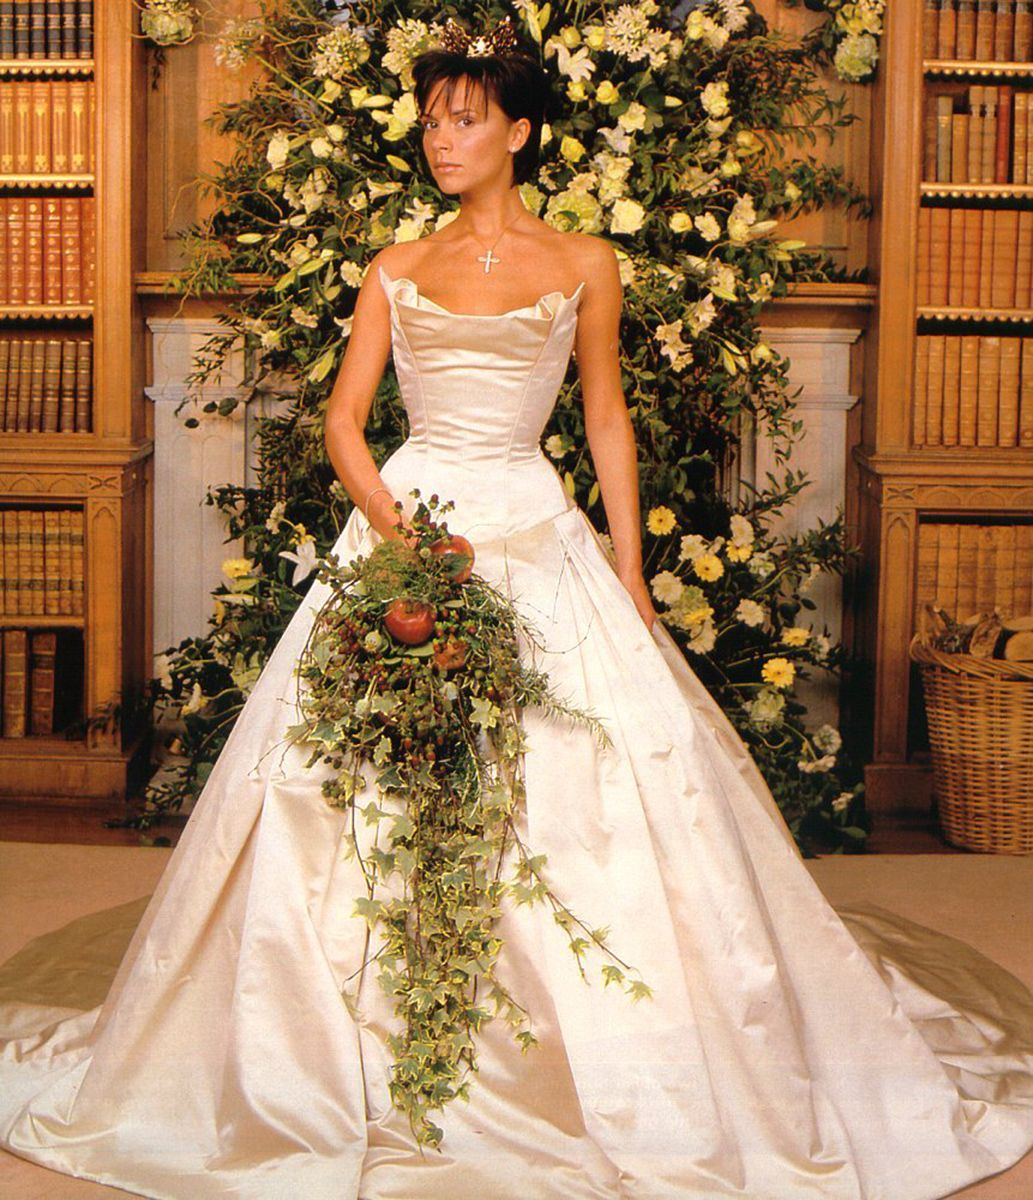 Iconic Wedding Dresses Throughout History Best Wedding Dresses Of All Time